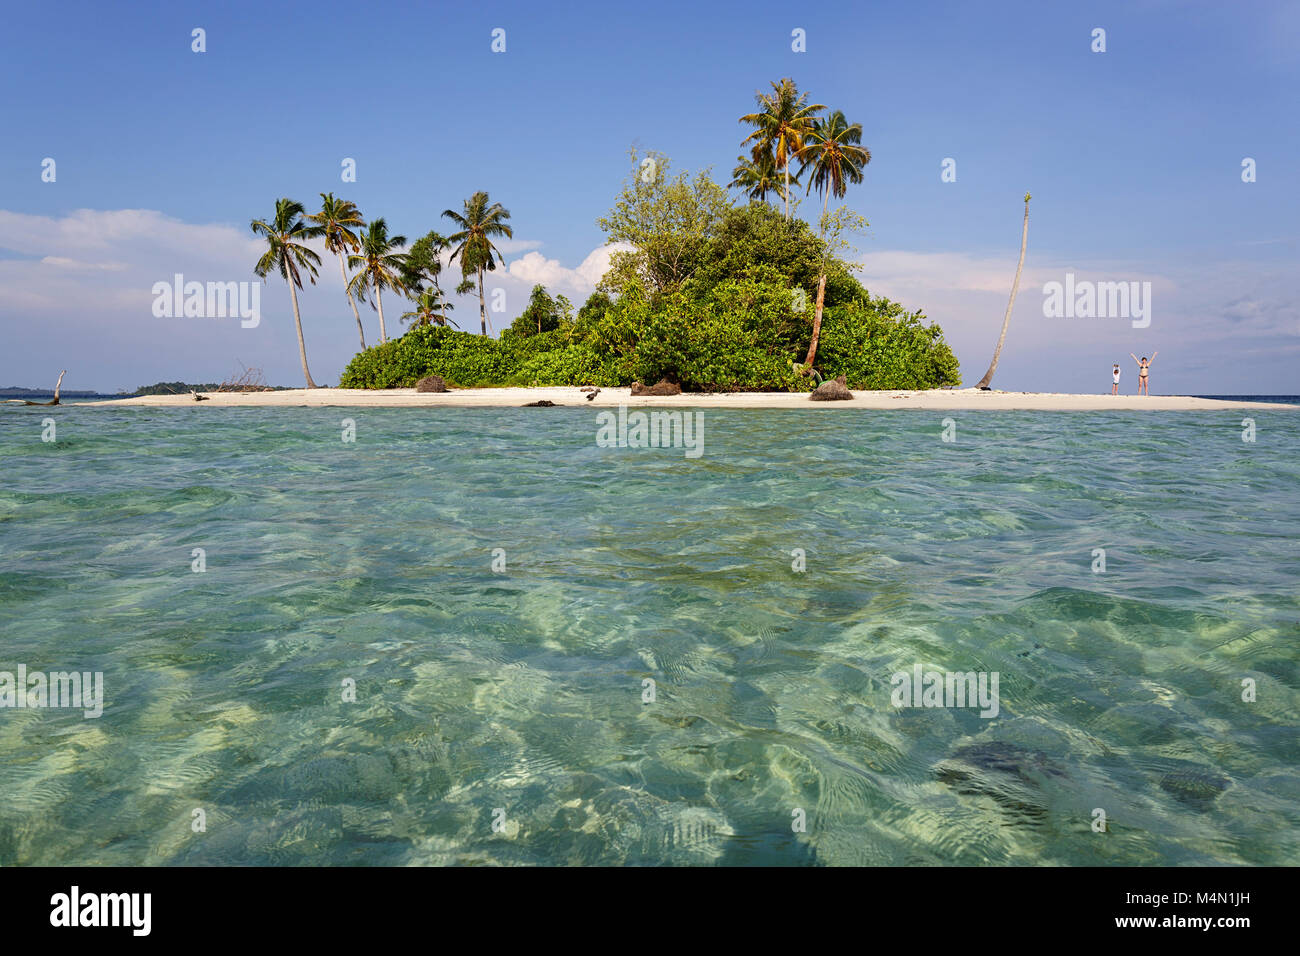 Woman and young boy standing on a sandy beach raising hands on a small tropical island on horizon in beautiful tropical - Stock Image